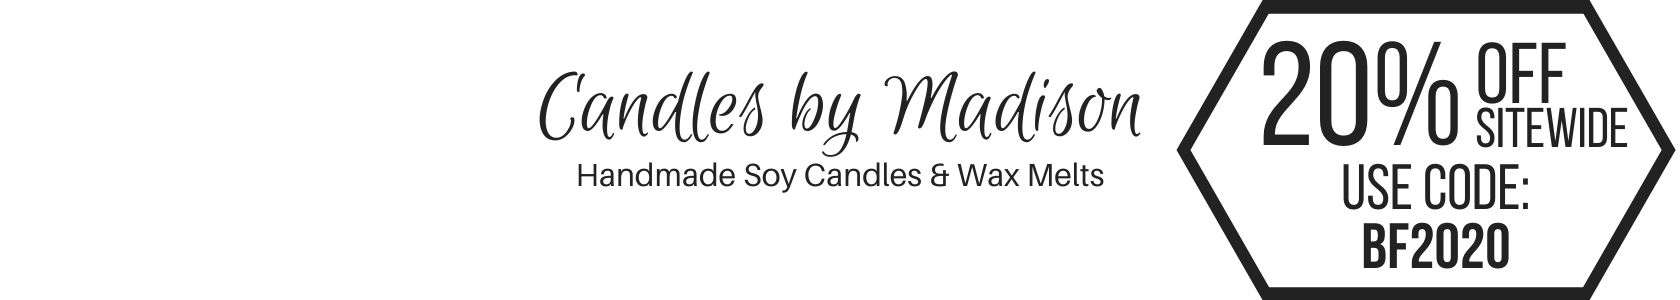 Candles By Madison